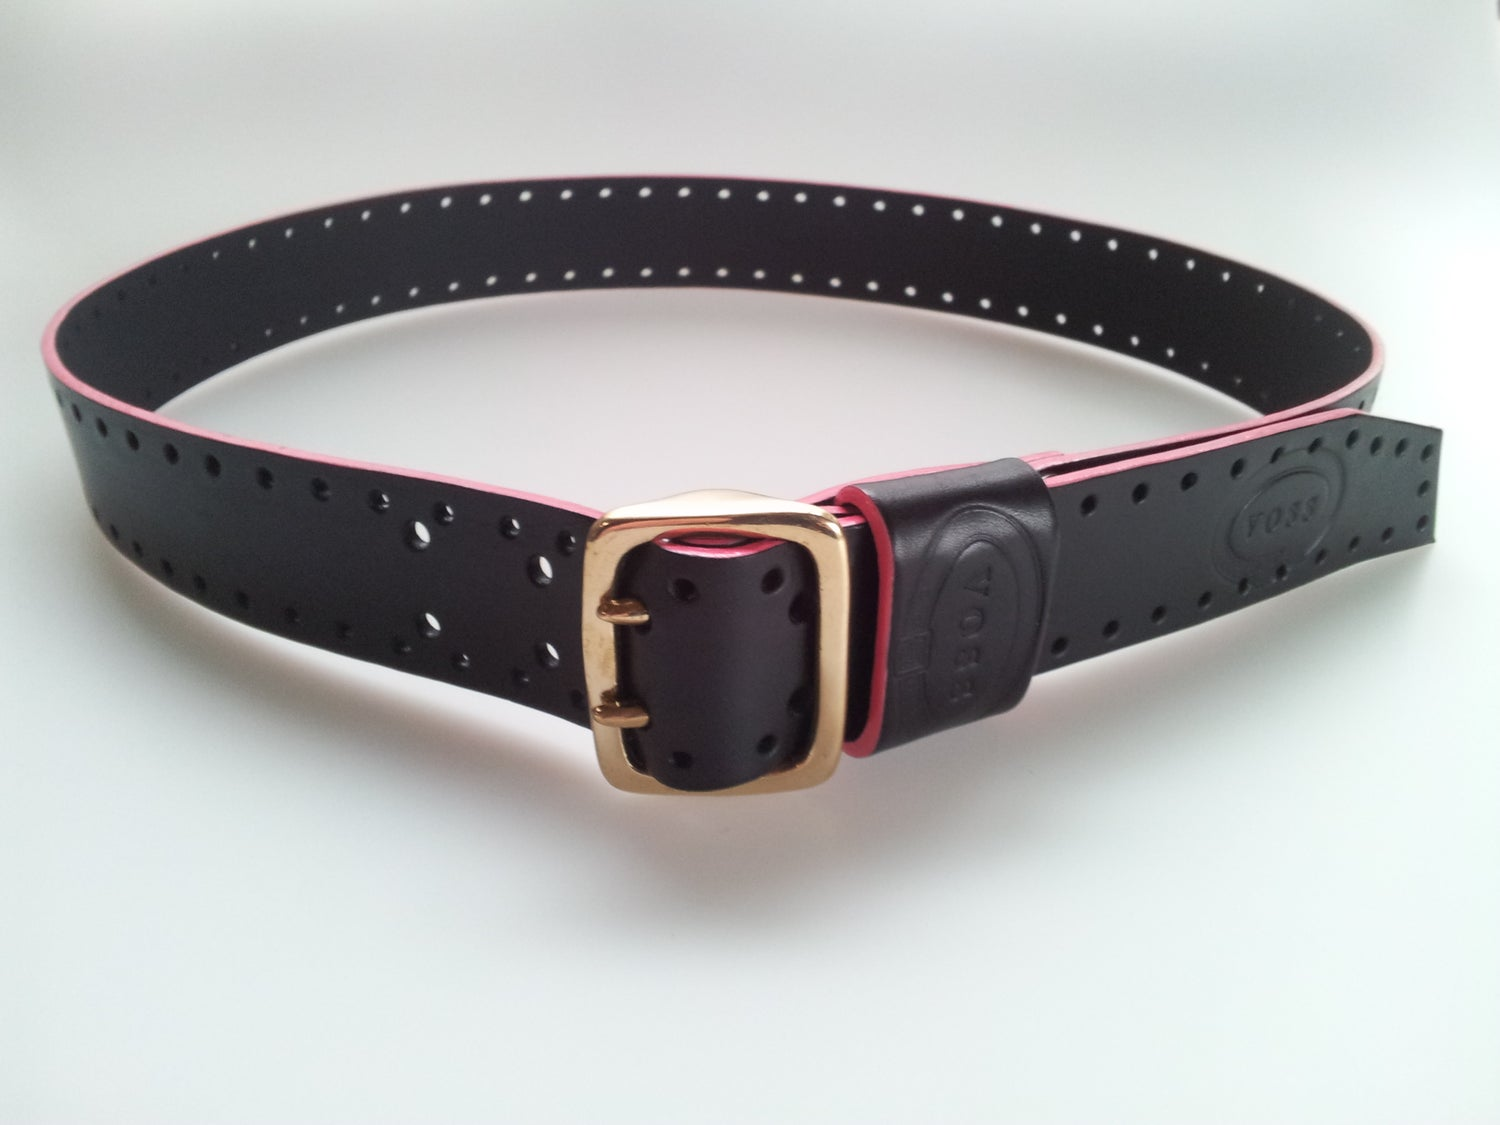 Image of Count / Holeshot + Pink Edge / Colour Options